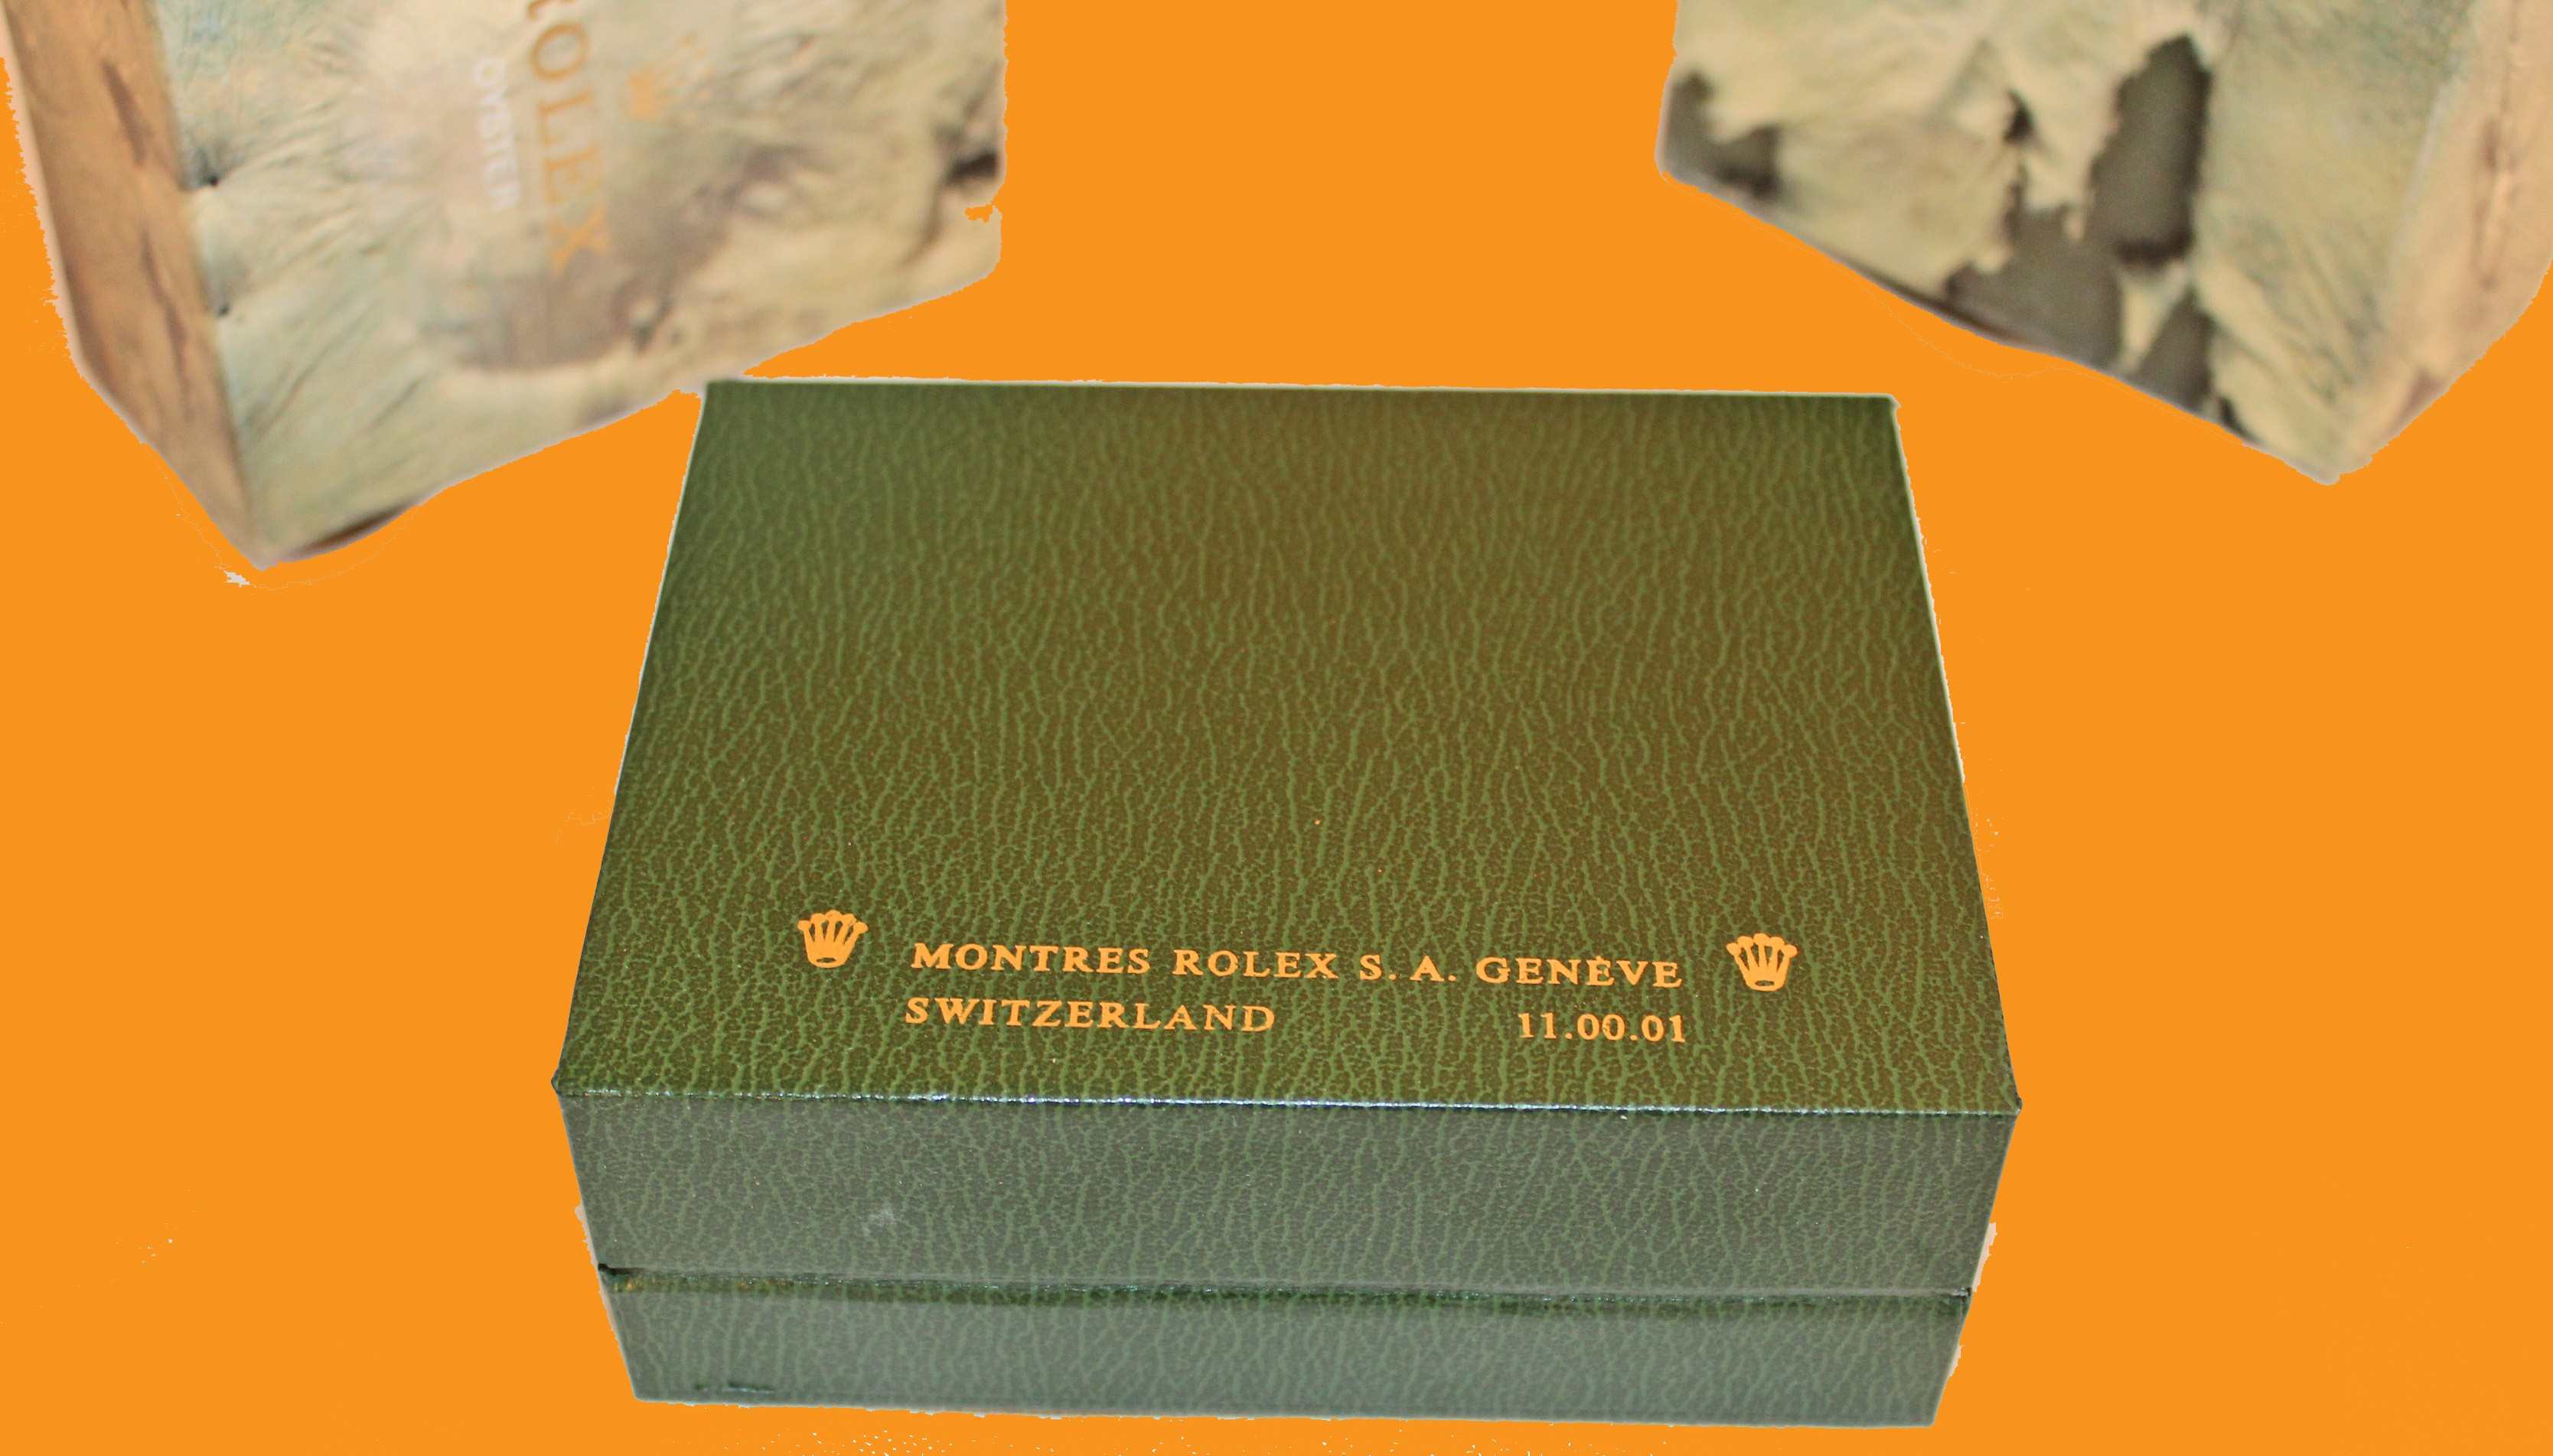 Rare 70's Rolex Collectible Watch Boxset Storage Craters 11.00.01 Submariner 5513, 1680, 1665, GMT 1675, 16750, Explorer 1016